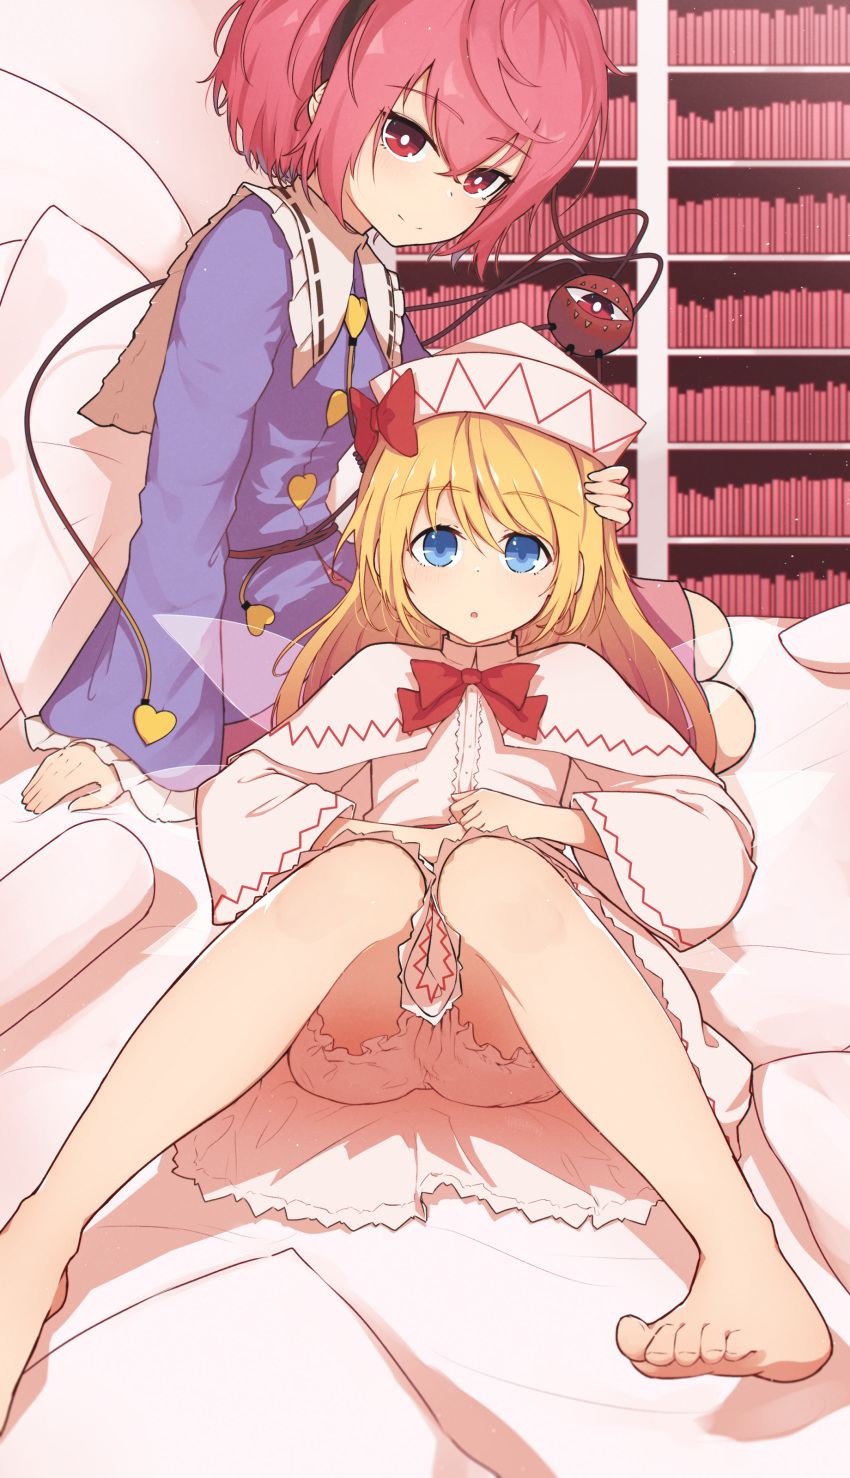 2girls :o absurdres arm_support blonde_hair bloomers blouse blue_eyes body_pillow bookshelf bow bowtie capelet dress eyeball fairy_wings foot_out_of_frame frilled_shirt_collar frilled_sleeves frills hairband hat hat_bow highres knees_together_feet_apart komeiji_satori lily_white long_hair long_sleeves looking_at_viewer multiple_girls on_bed on_lap pillow pink_hair red_bow red_eyes red_neckwear ribbon-trimmed_collar ribbon_trim senzaicha_kasukadoki short_hair sitting sleeves_past_wrists smile third_eye touhou transparent_wings underwear wide_sleeves wings yokozuwari